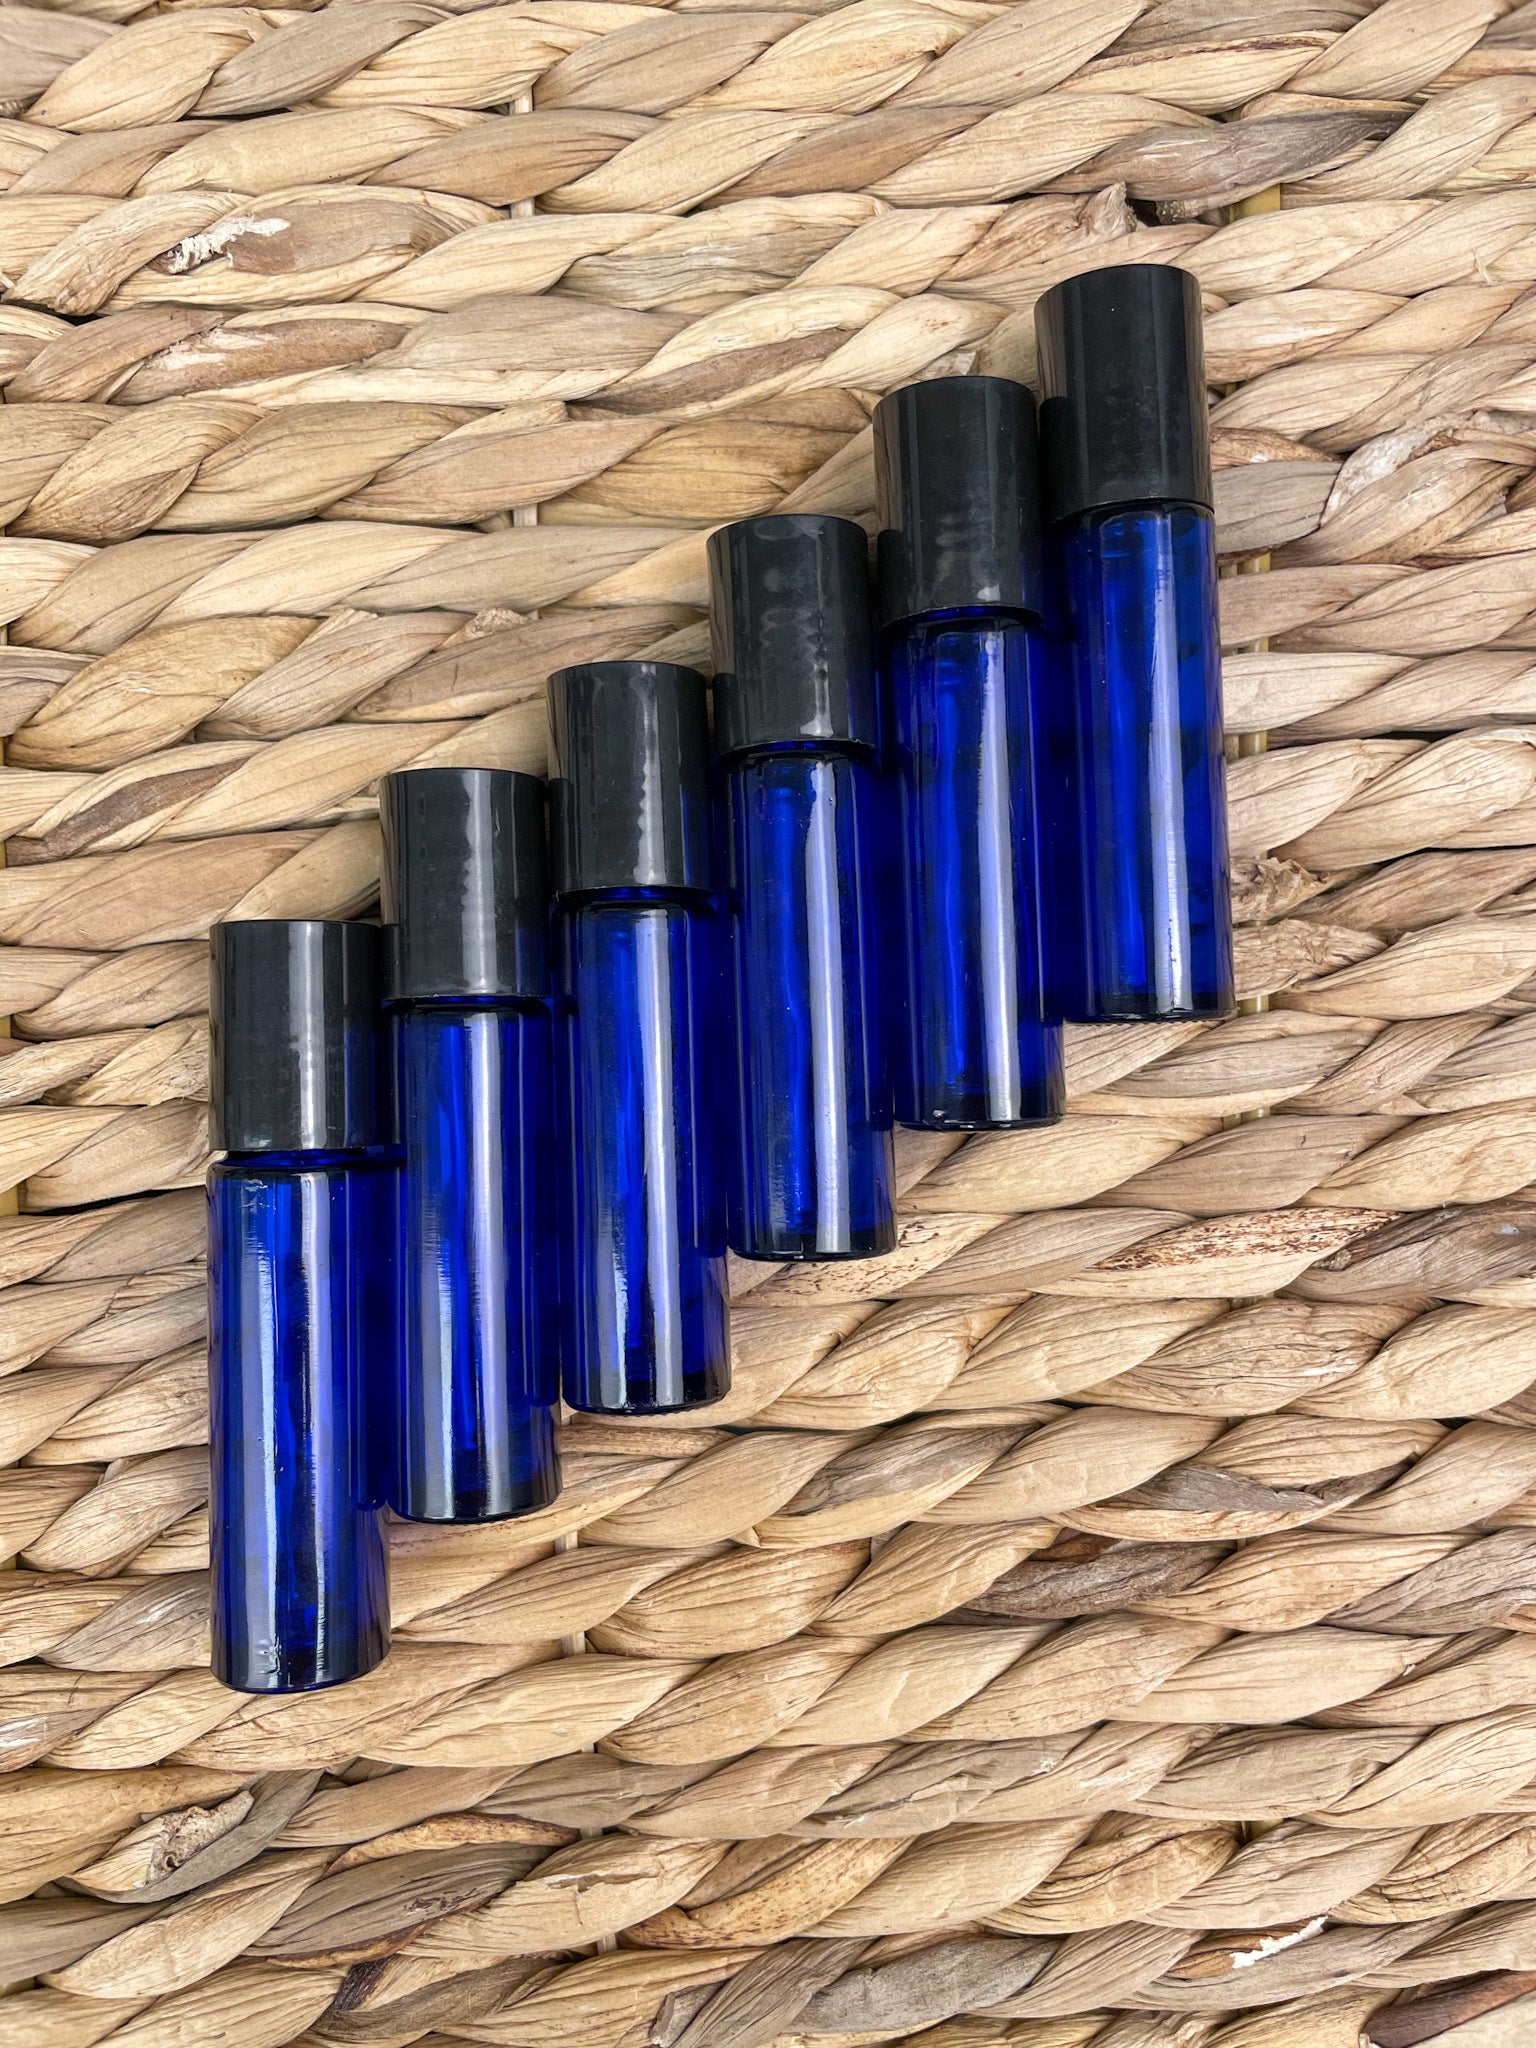 Essential Oil Roller Bottles 6 Pc 10 ml Cobalt Blue Glass with Stainless Steel Roller Balls